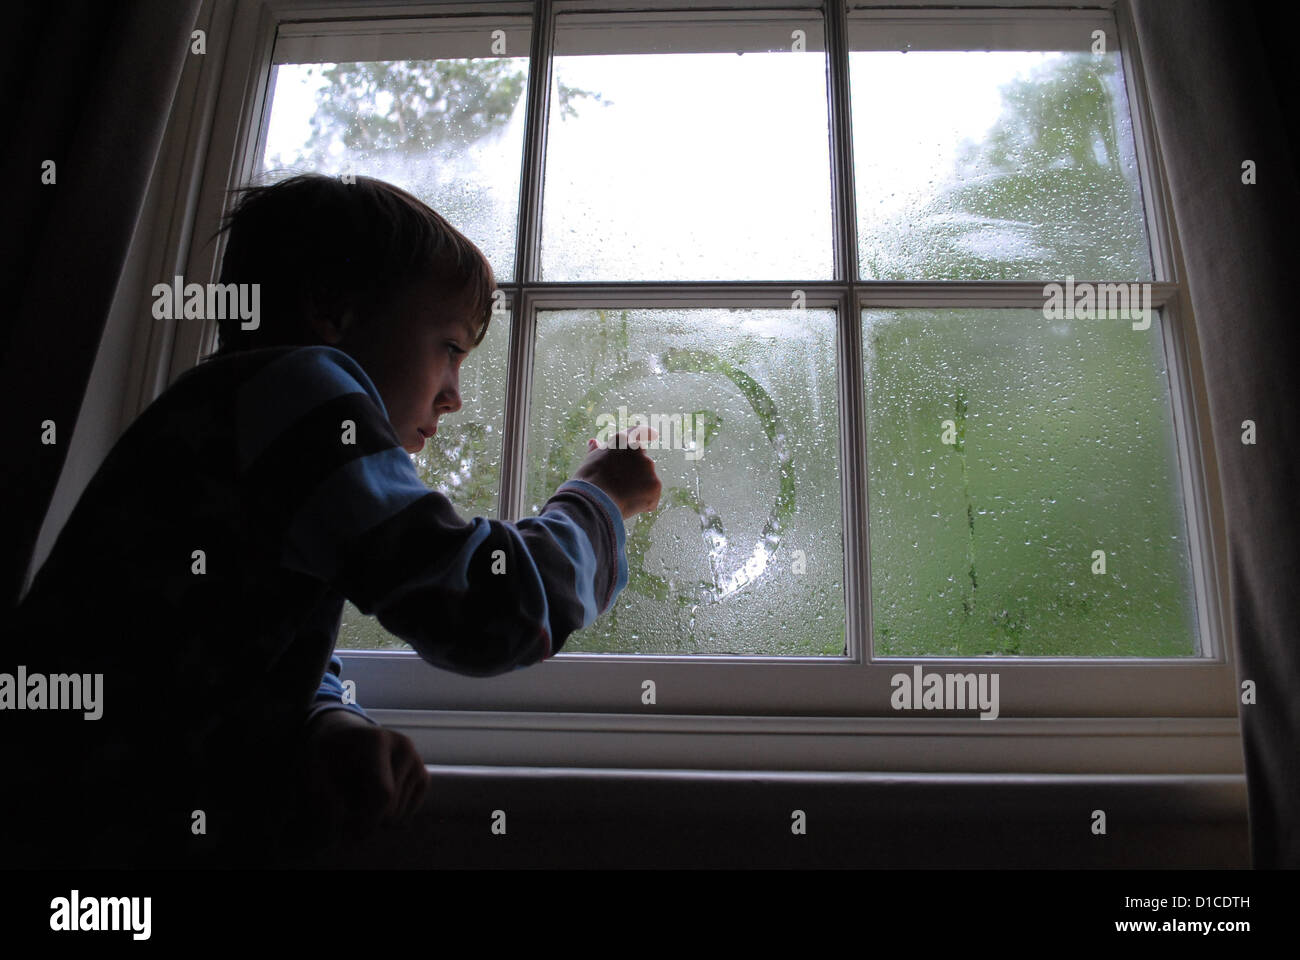 8 year old boy drawing a sad face in the condensation on the window. - Stock Image